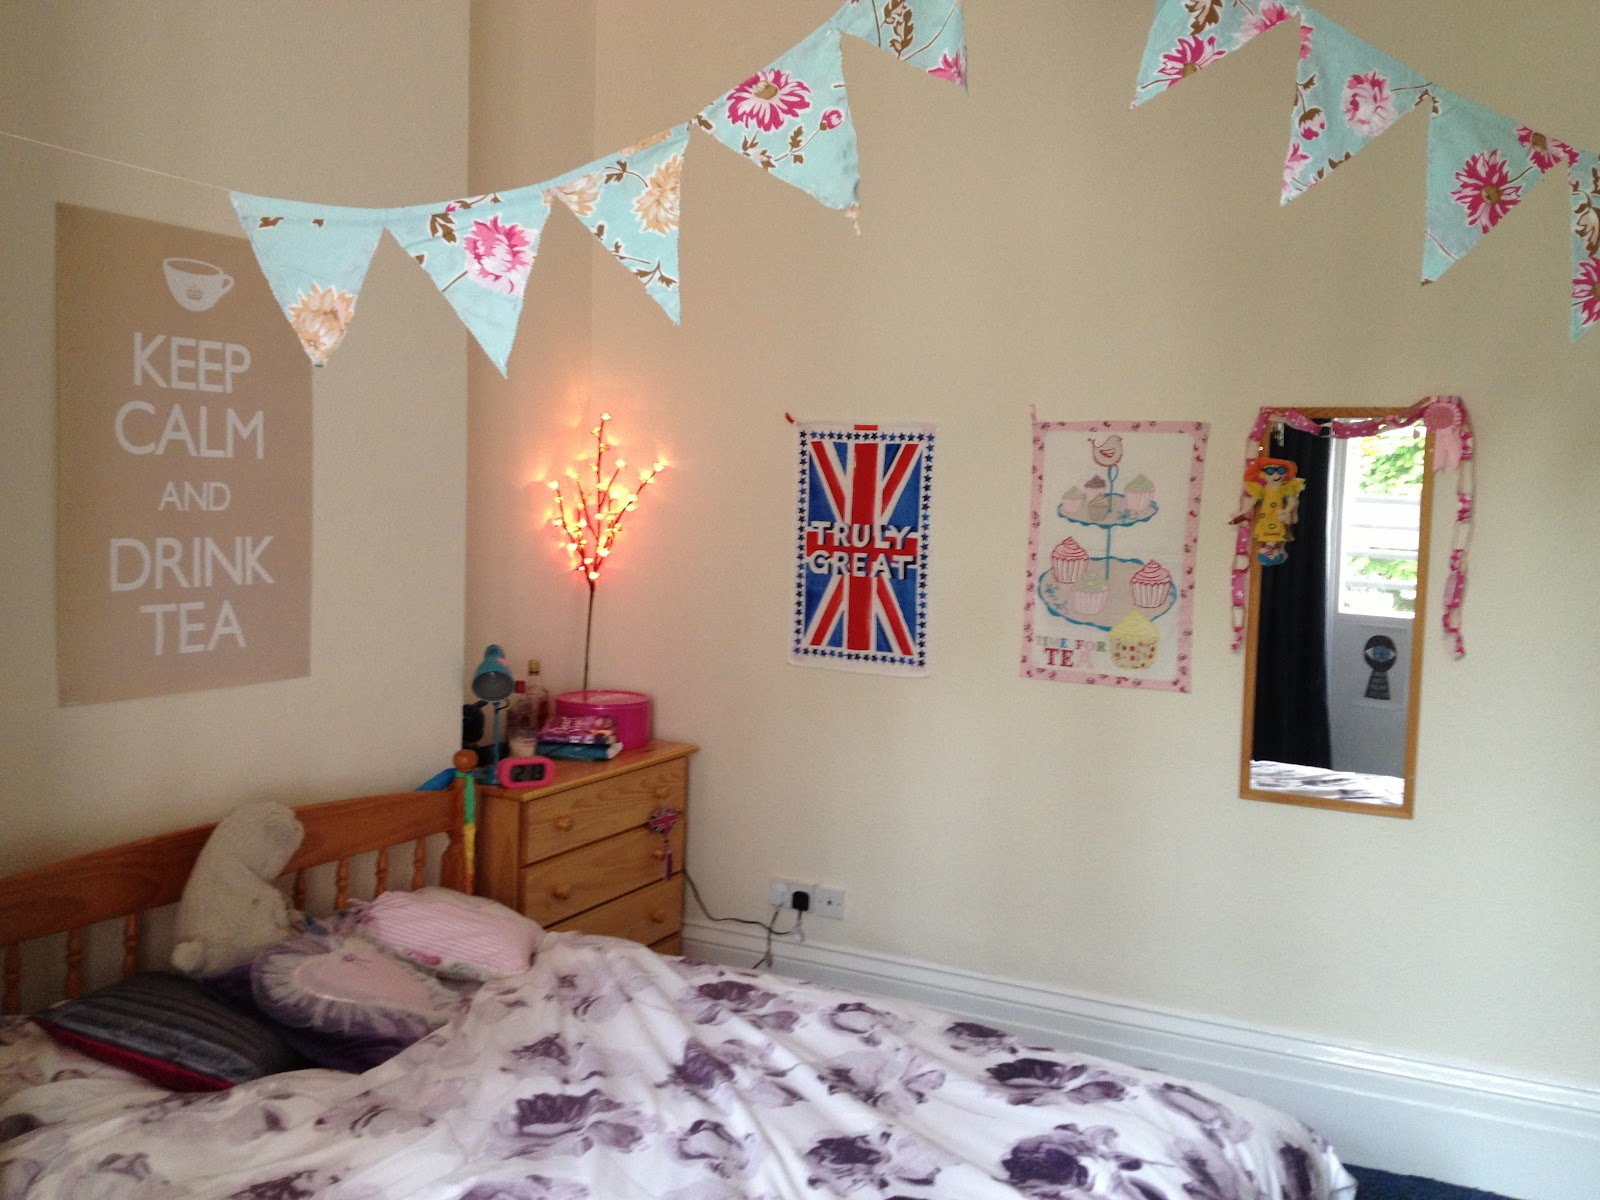 The twenty best ways to decorate your student room at uni for Stuff to decorate room